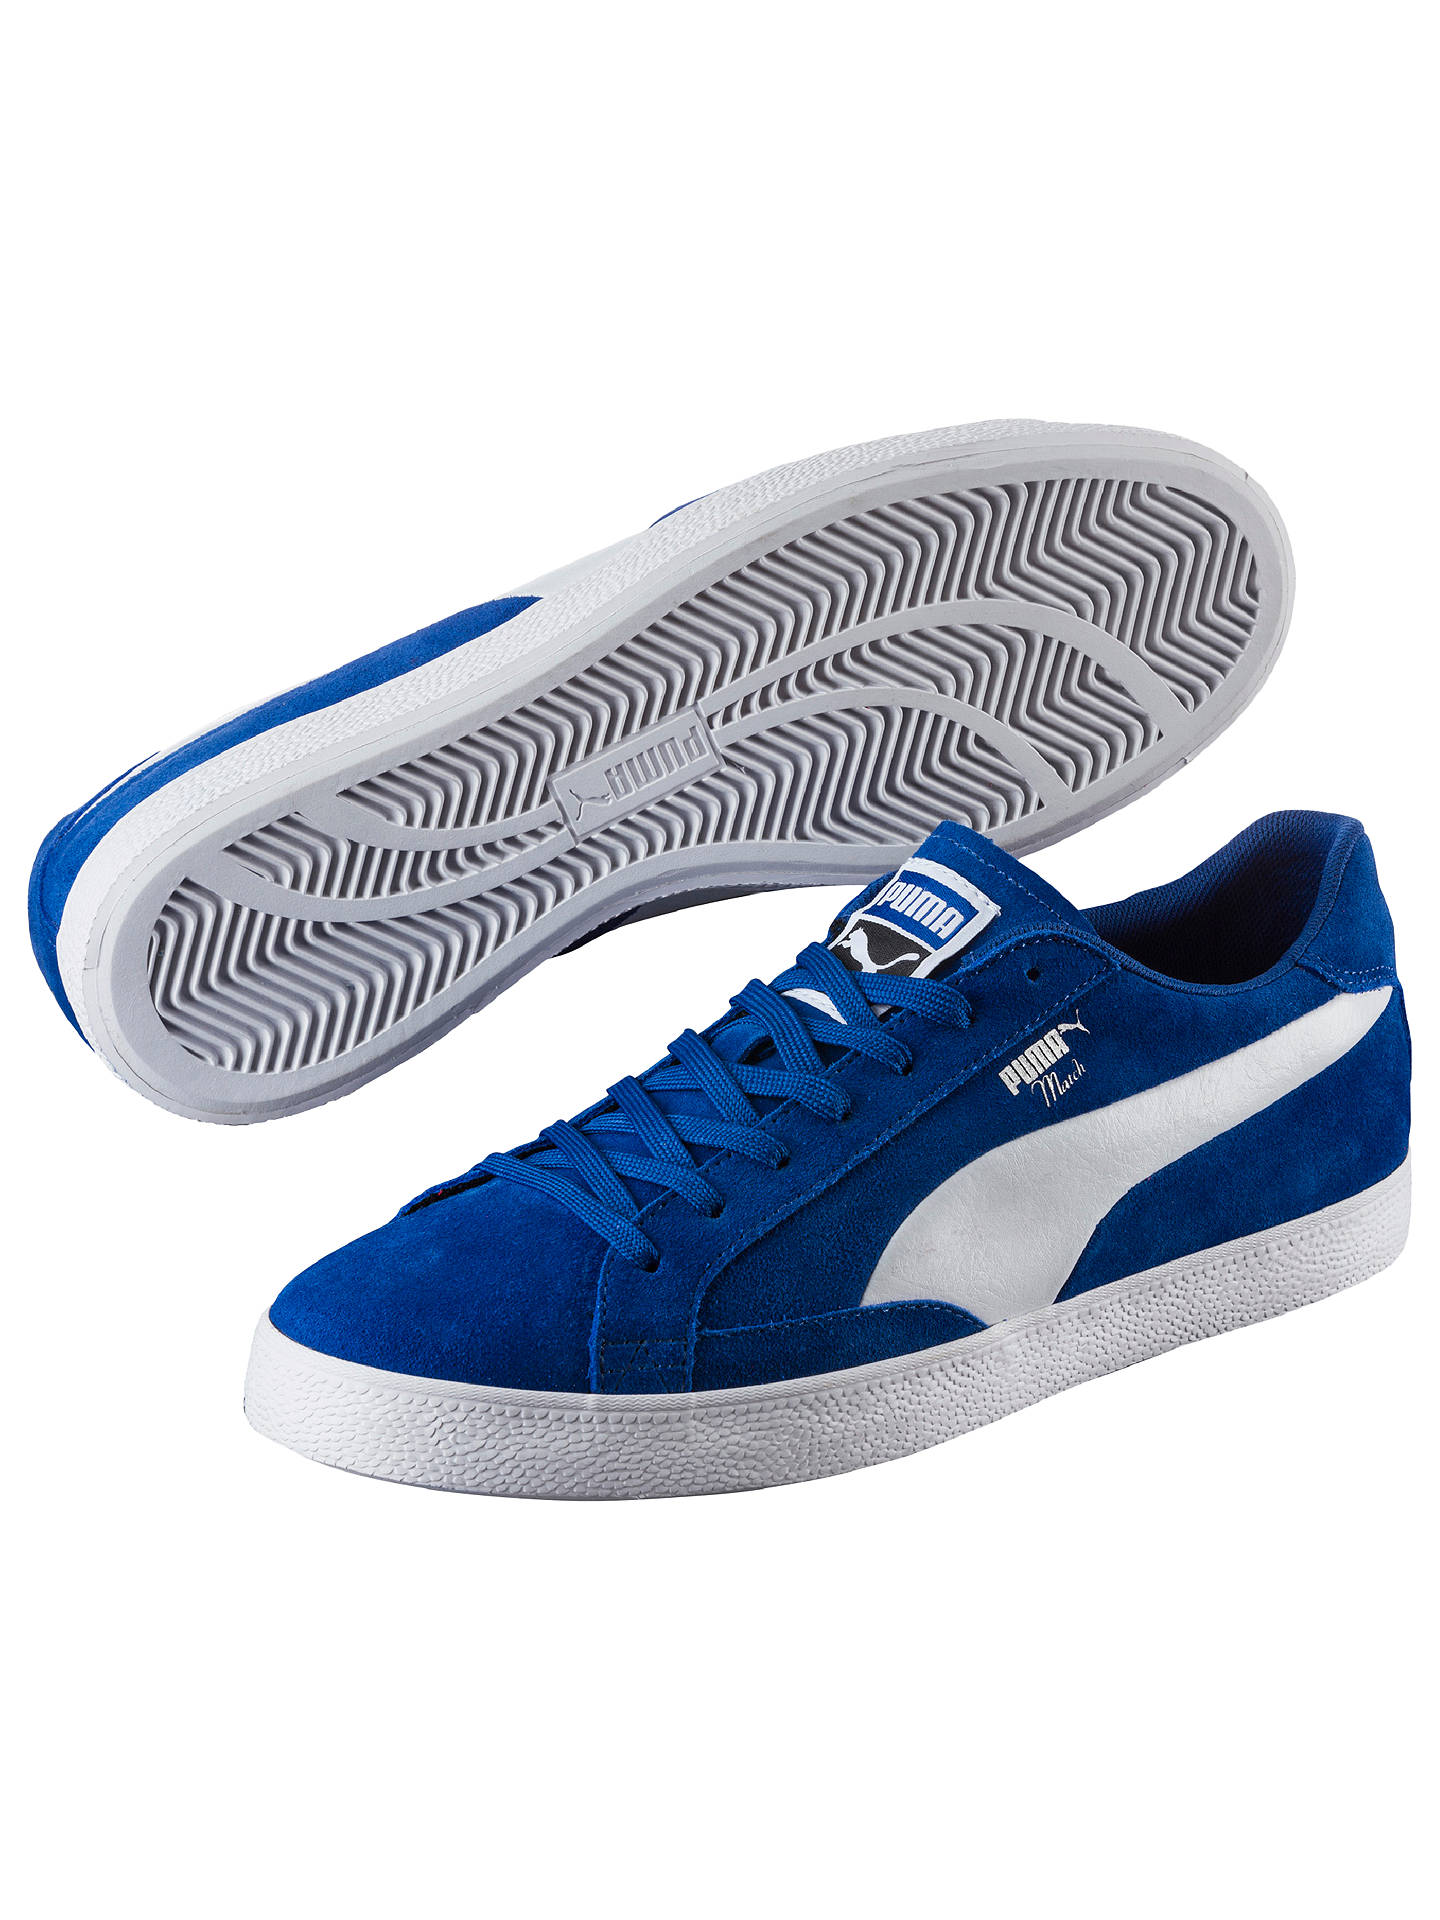 a1f49143298f6a BuyPuma Match Vulc 2 Men s Trainers